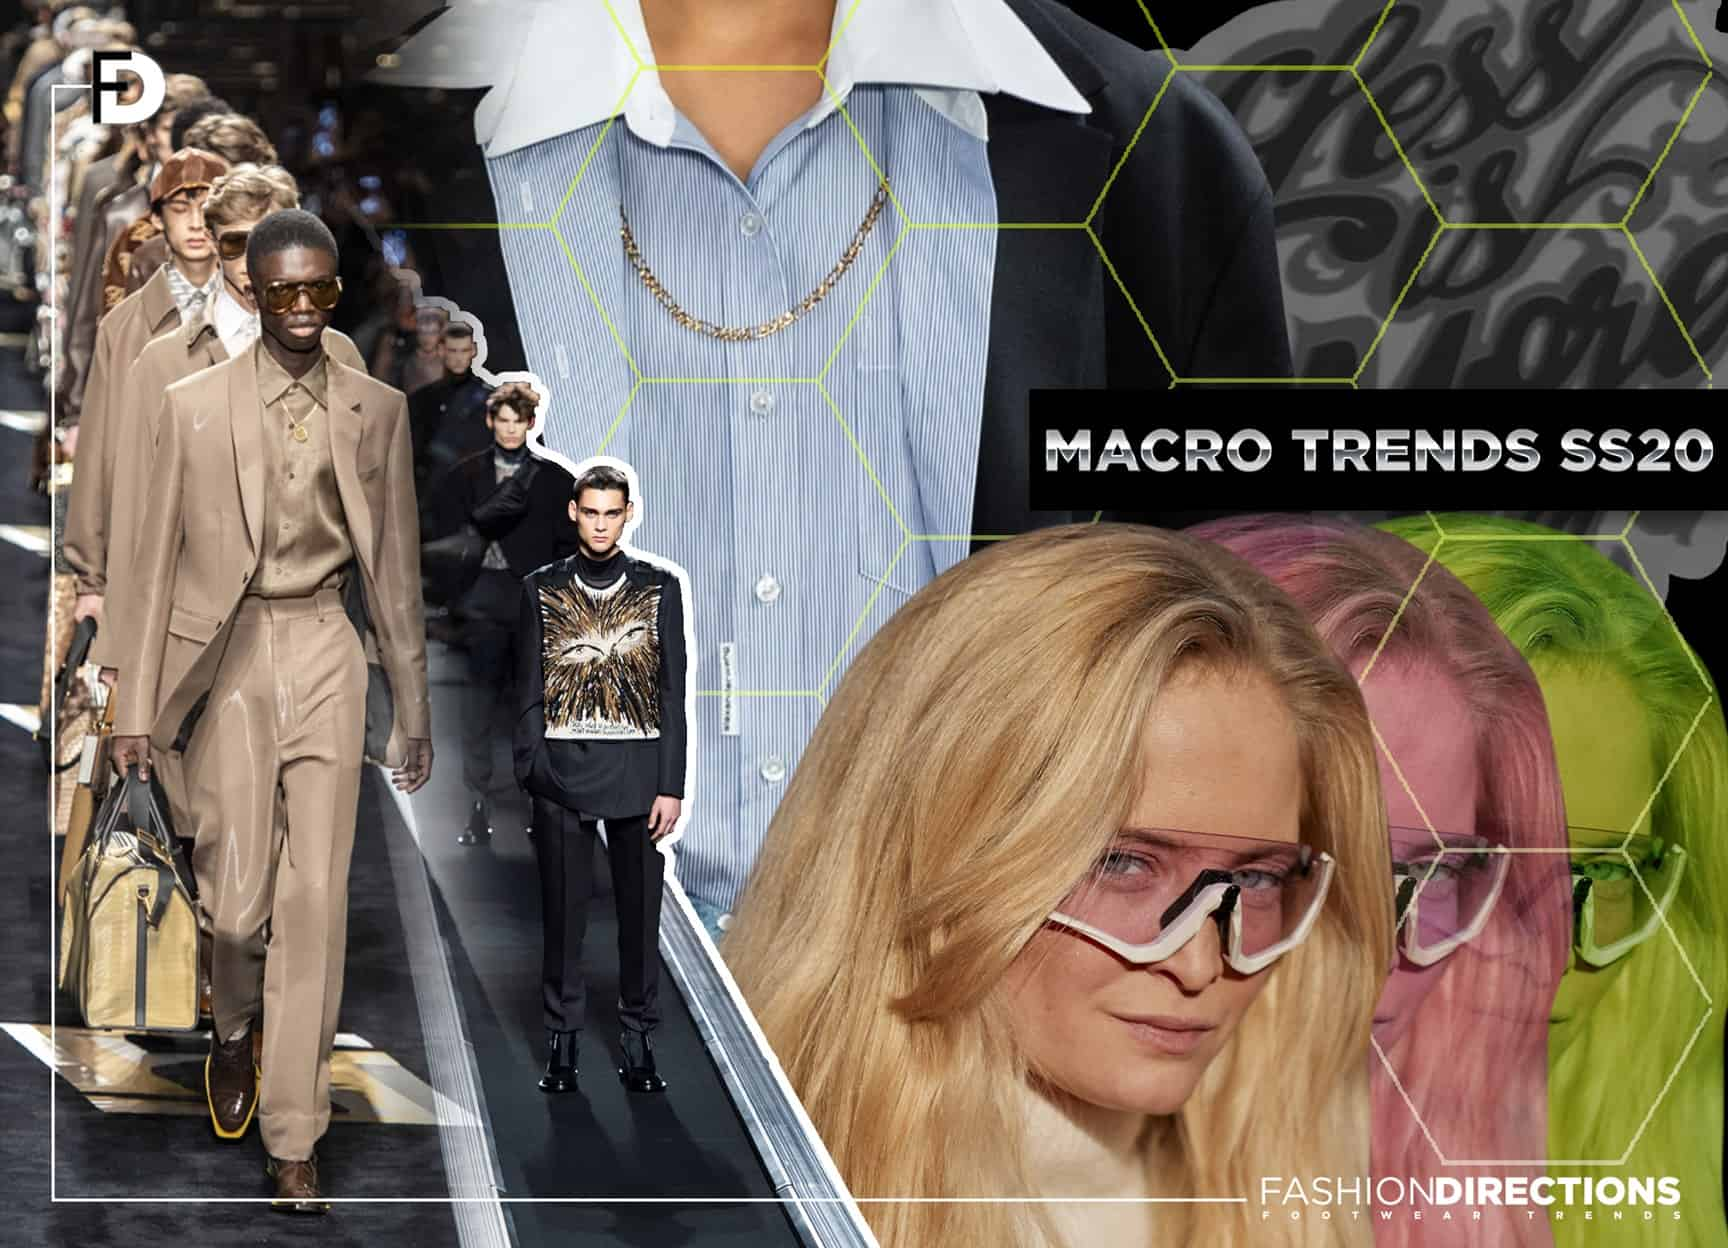 Shoes Macro Trends ss20